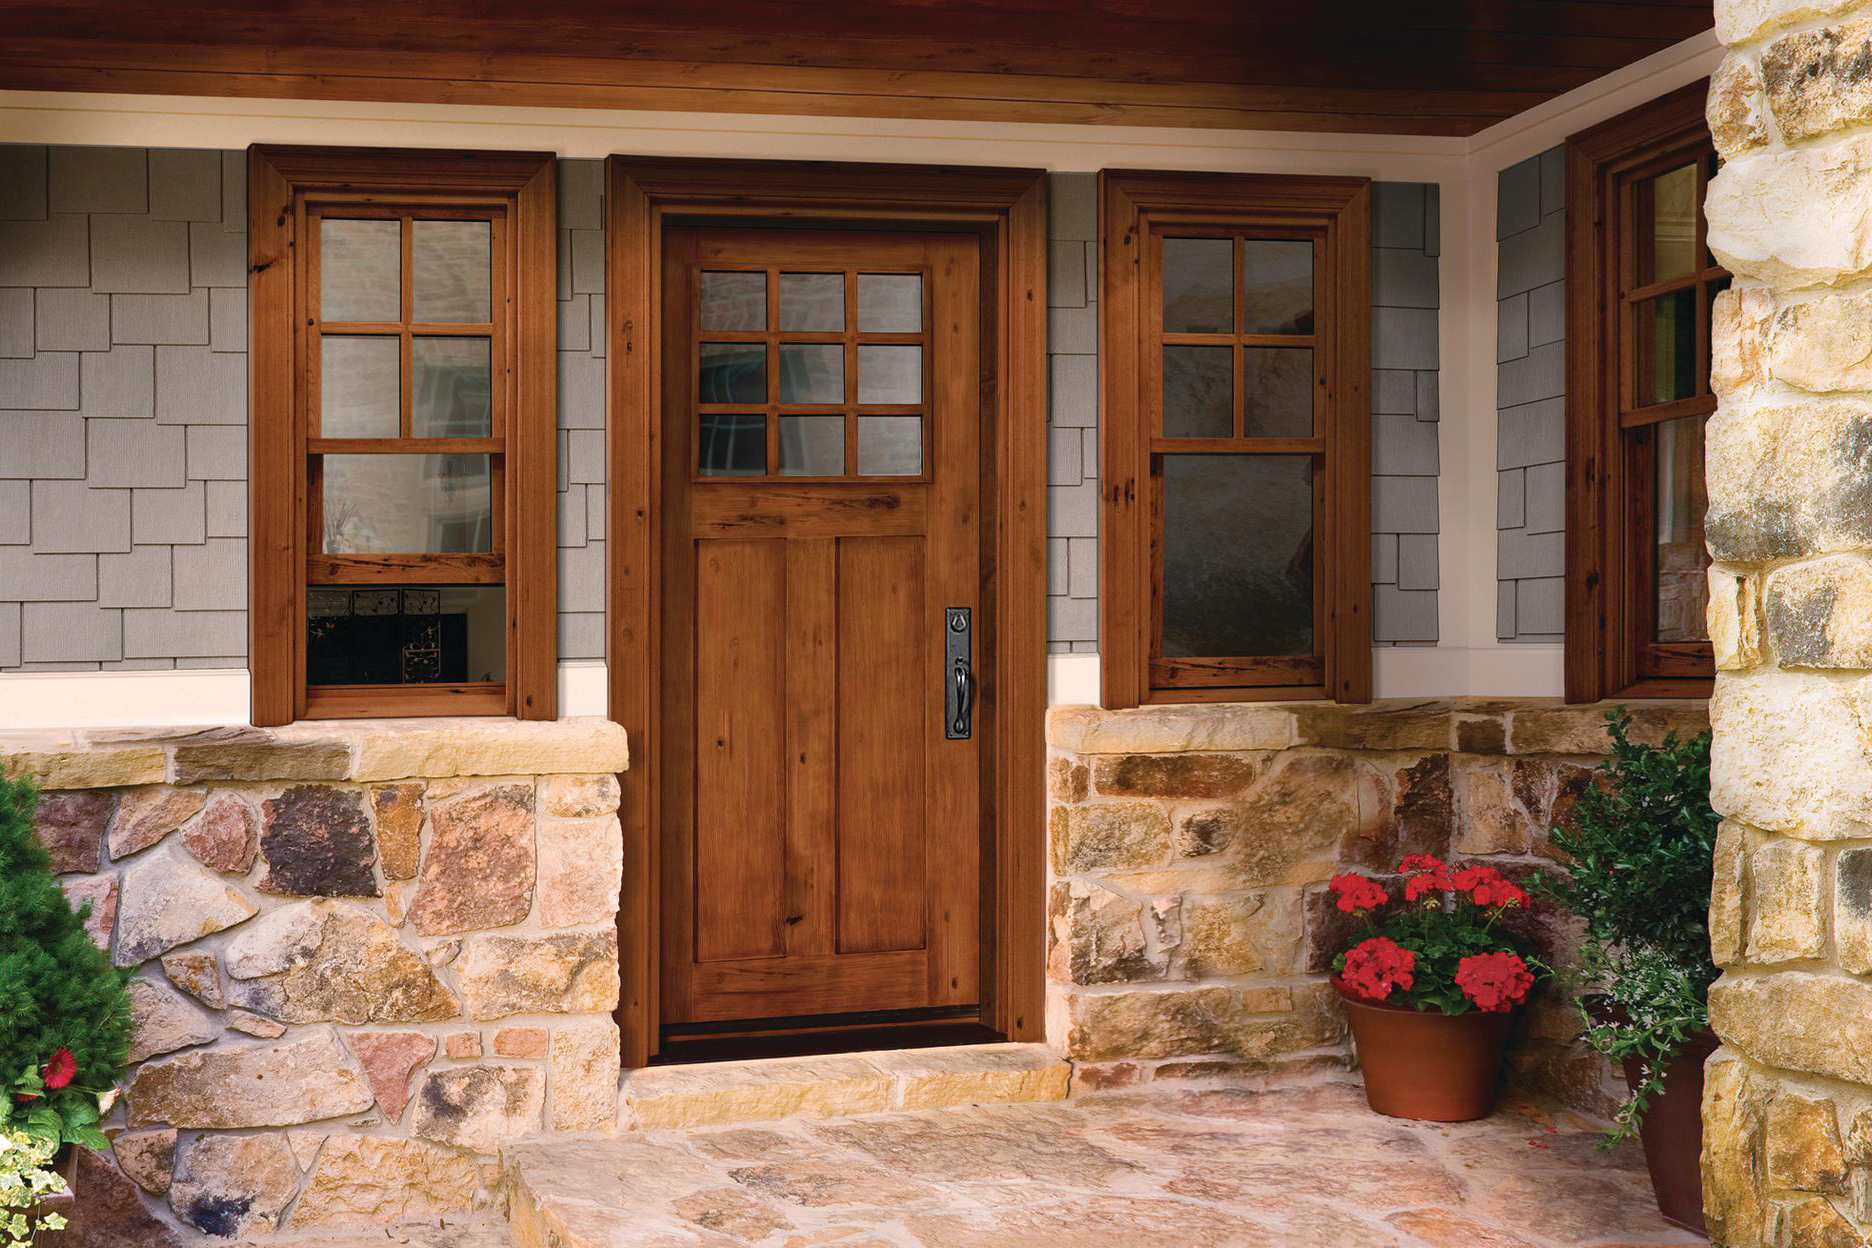 Reclaimed Rustic: Jeld-Wen Reclaimed Wood Windows and Doors ...